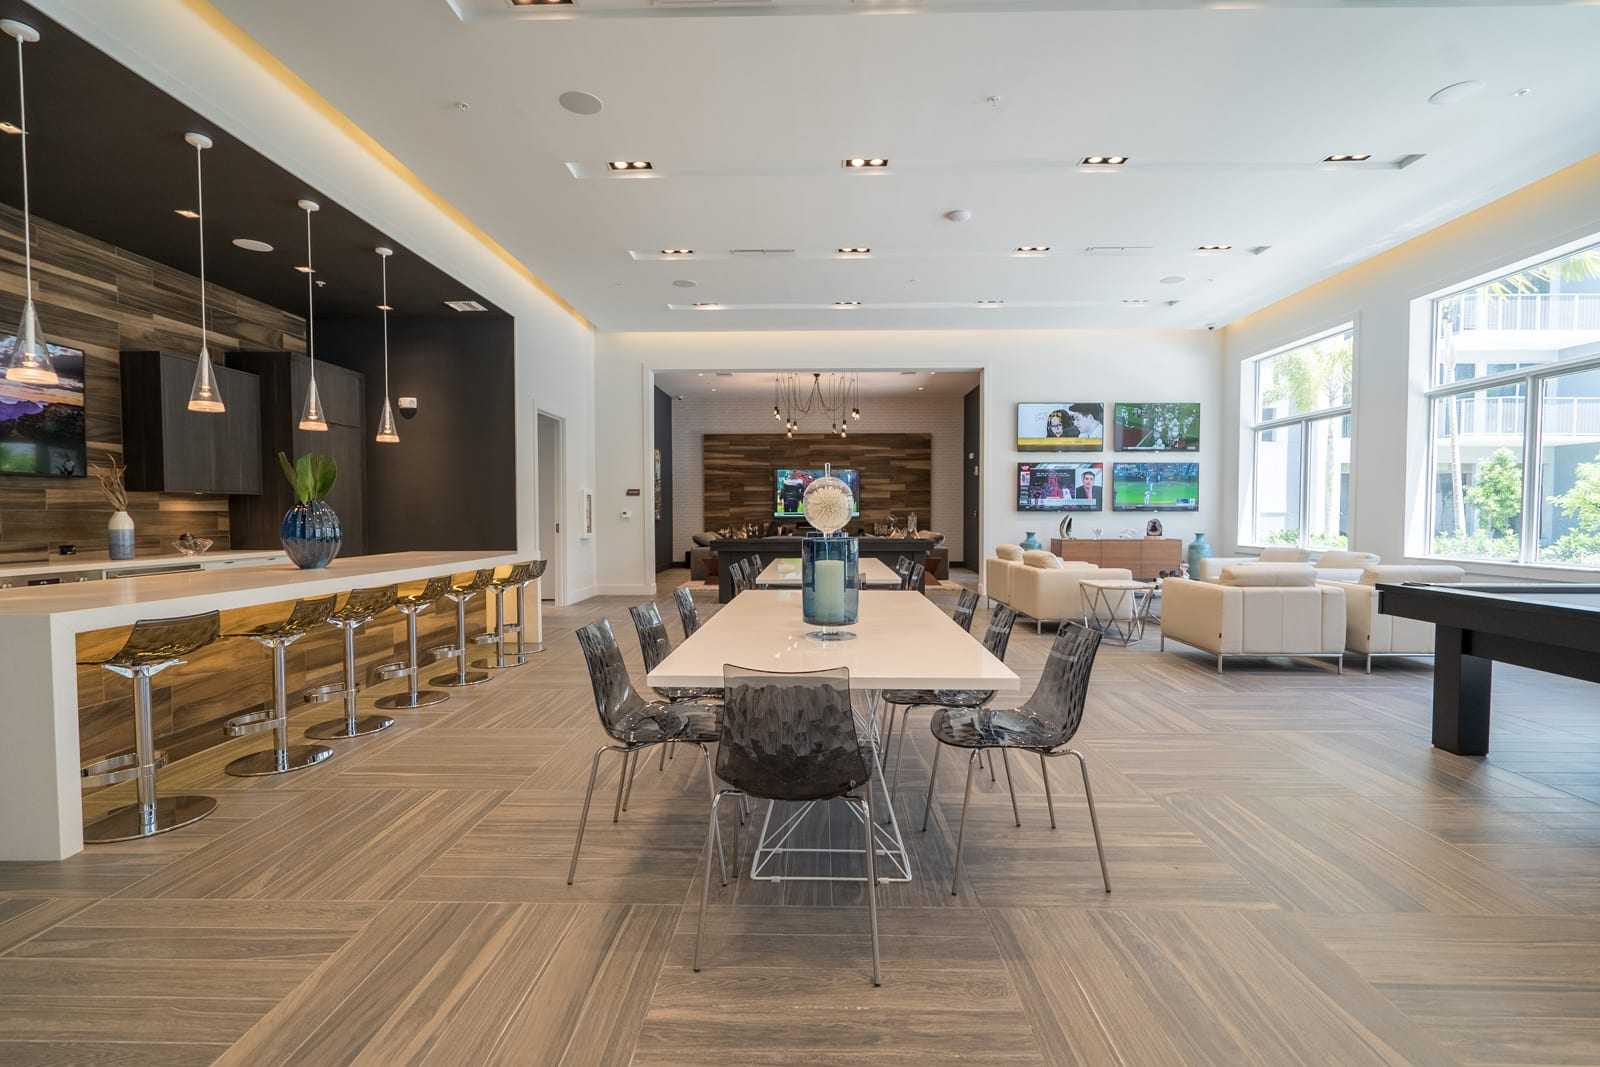 Club Room for Entertaining at Allure by Windsor, Boca Raton, Florida